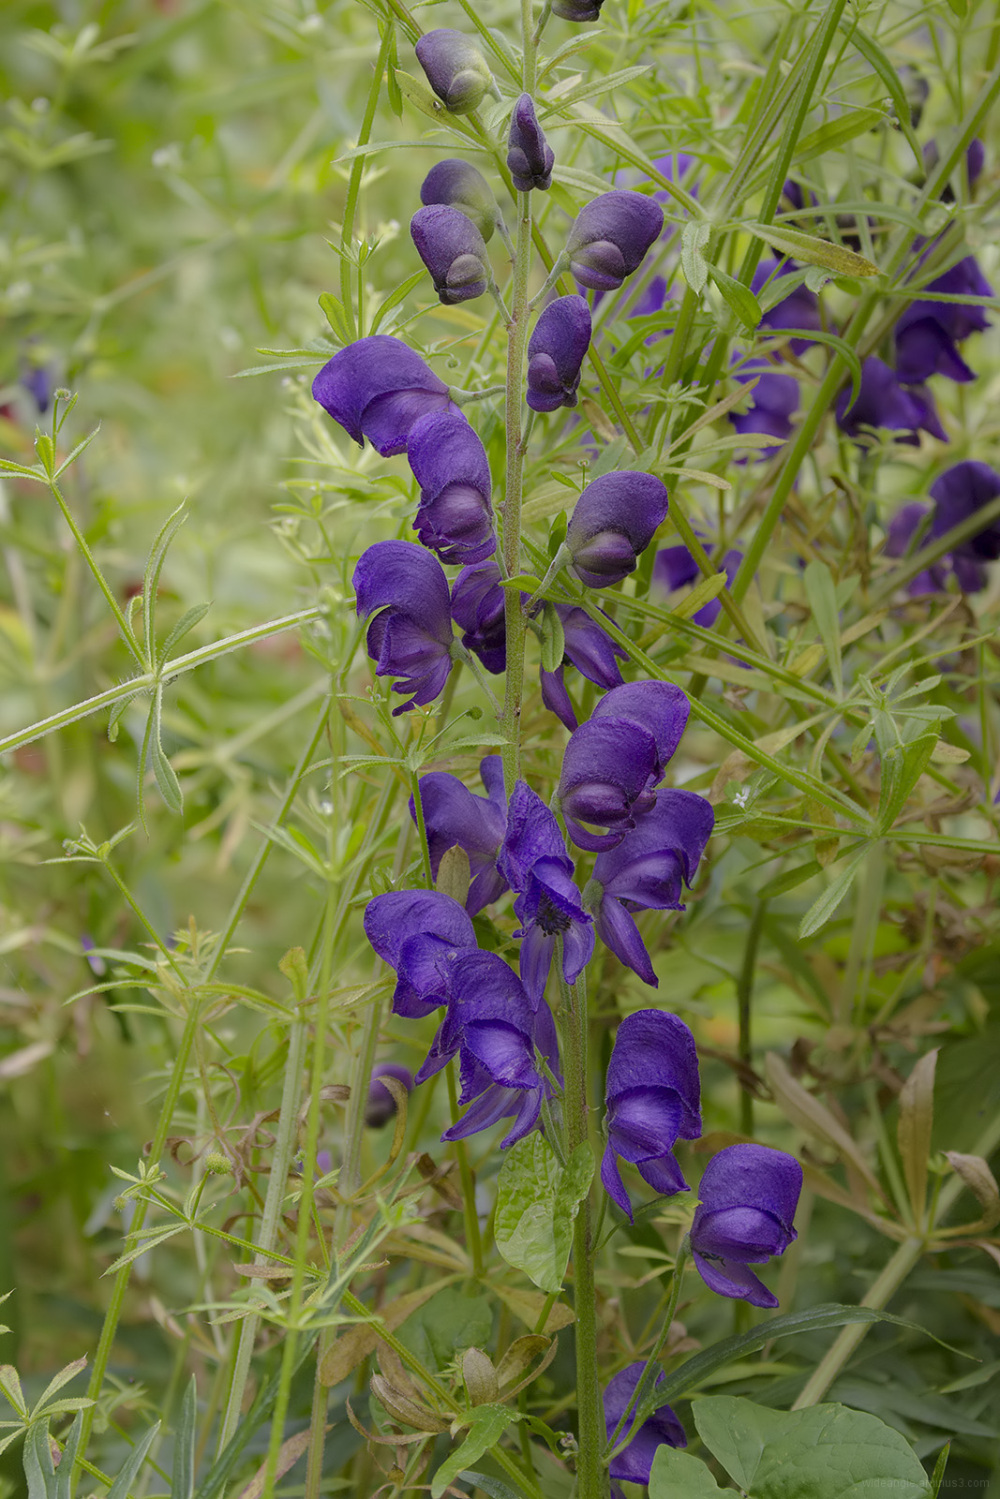 monkshood purple poisonous plants